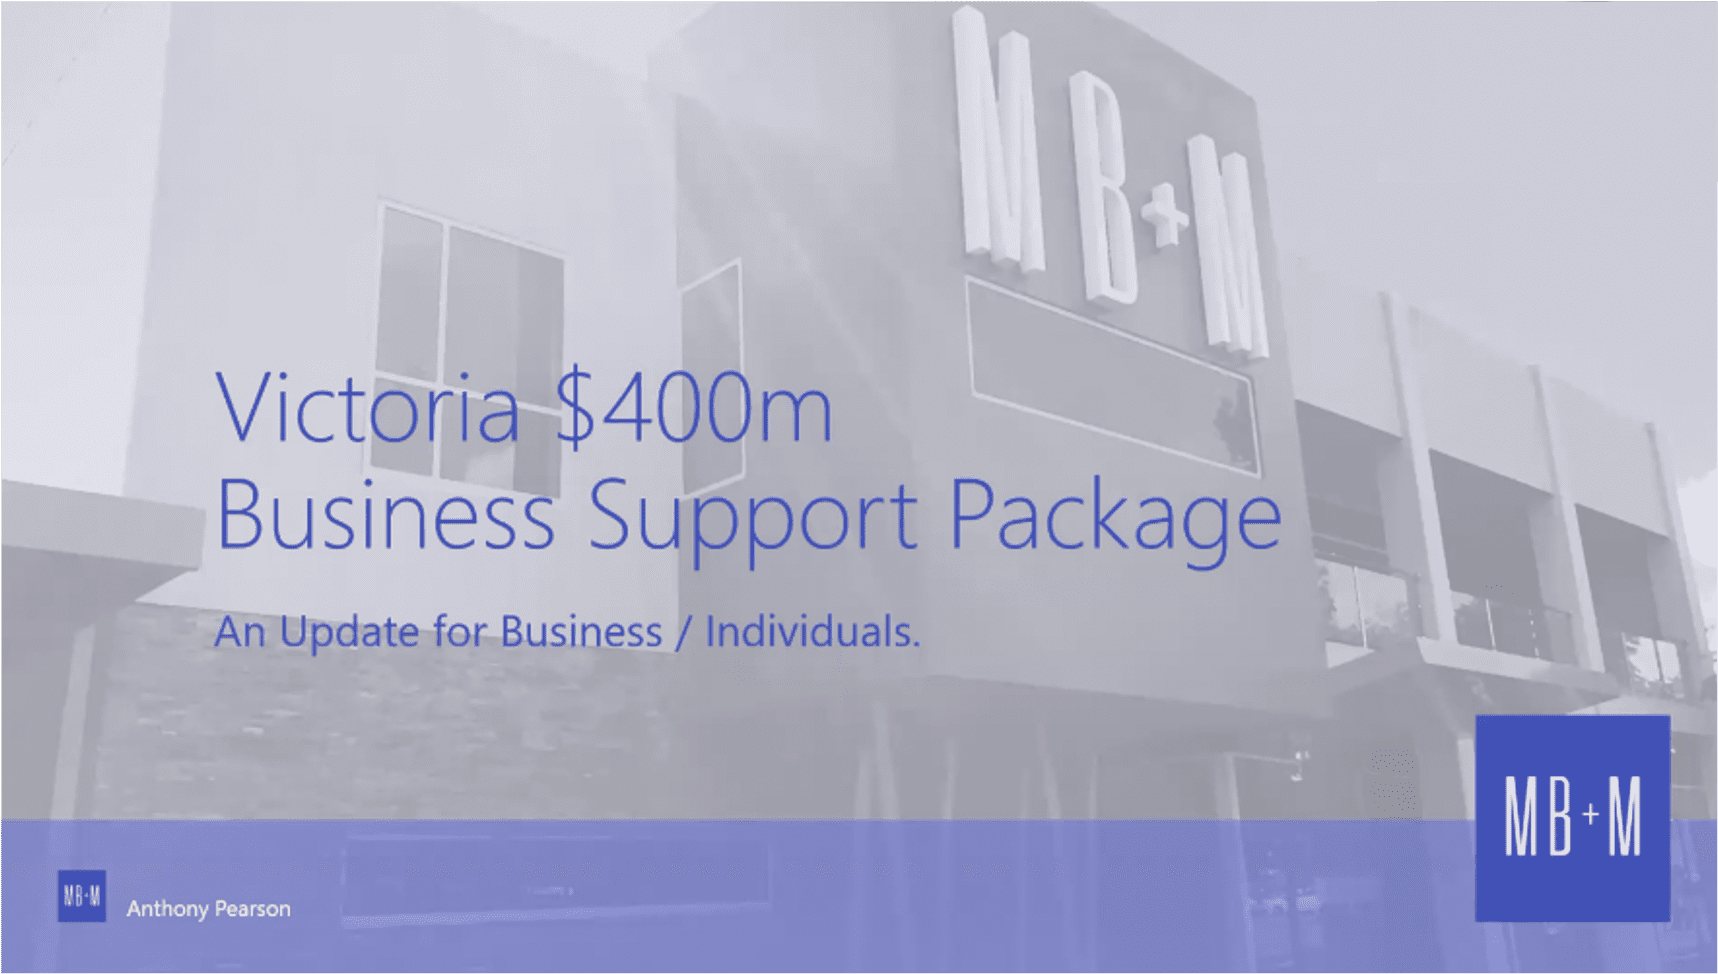 Victoria $400m Business Support Package